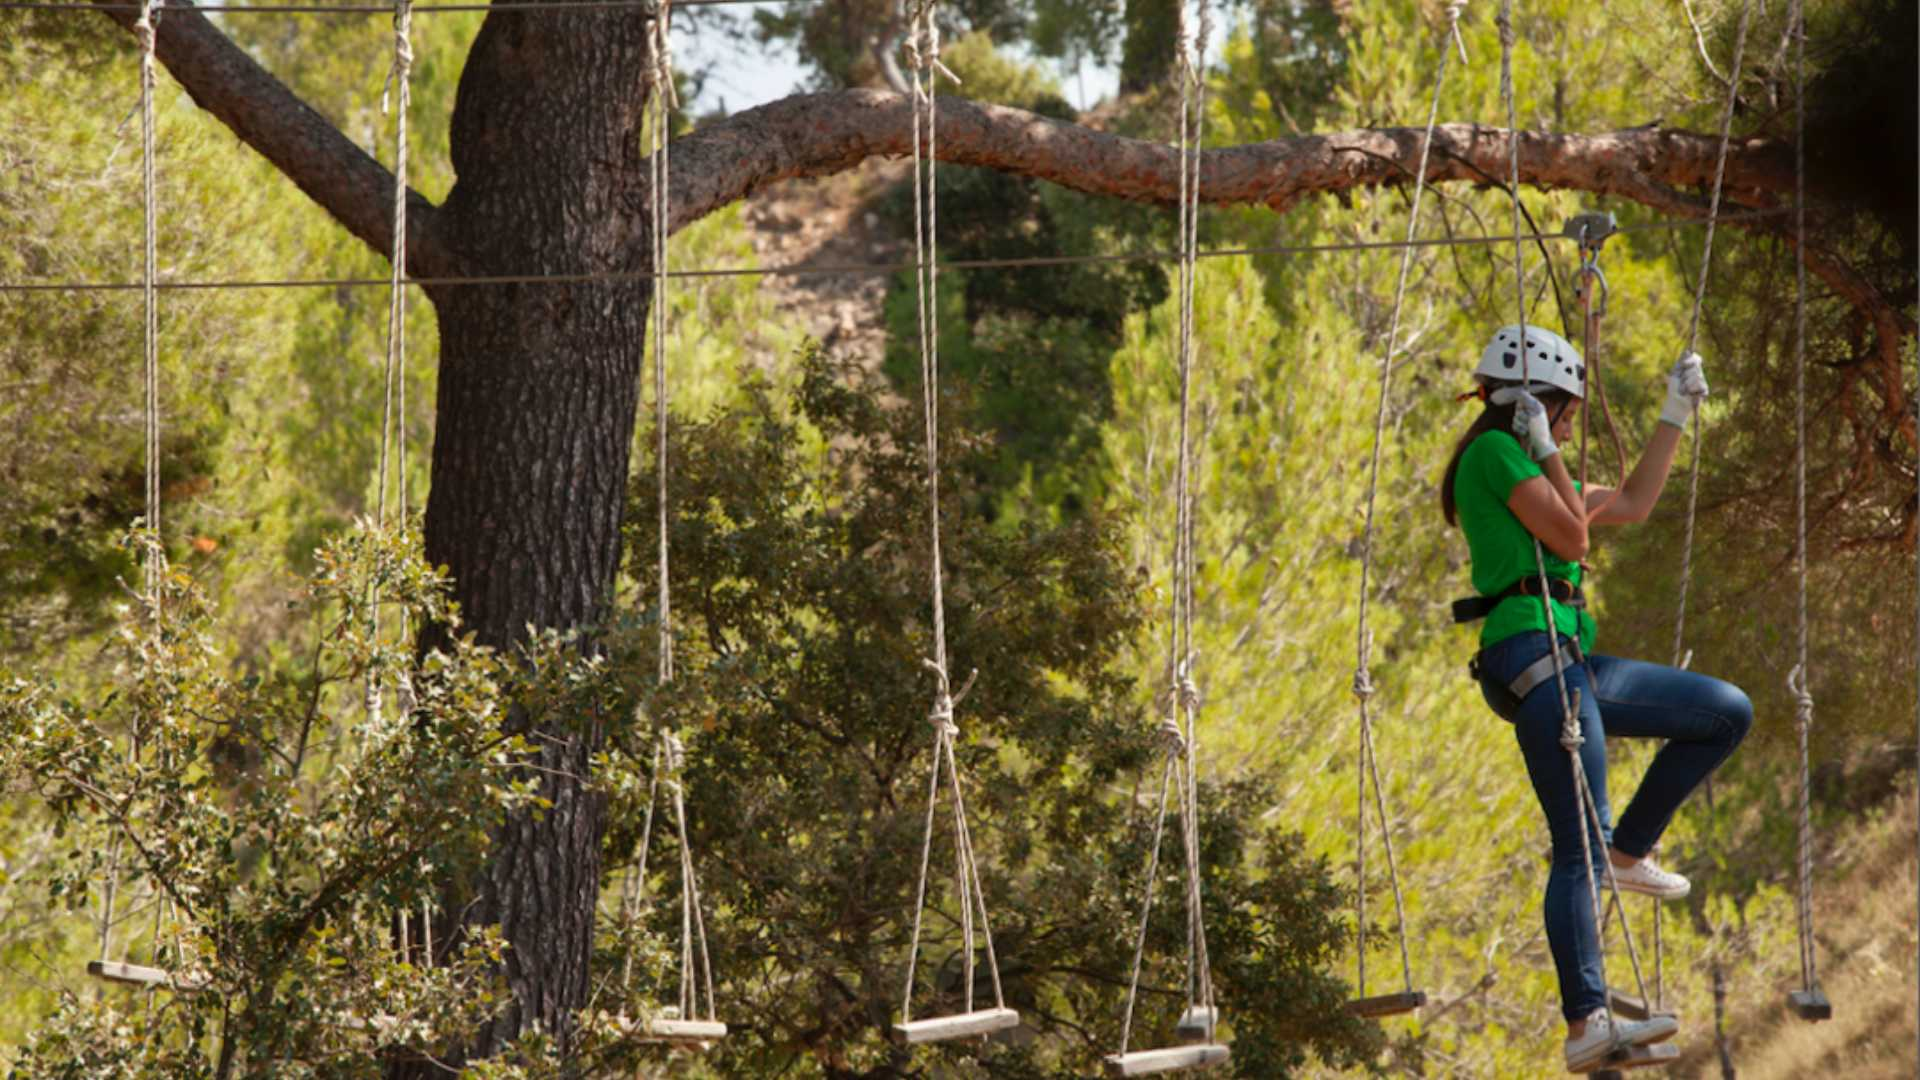 Reopening of Saltapins: Adventure Park